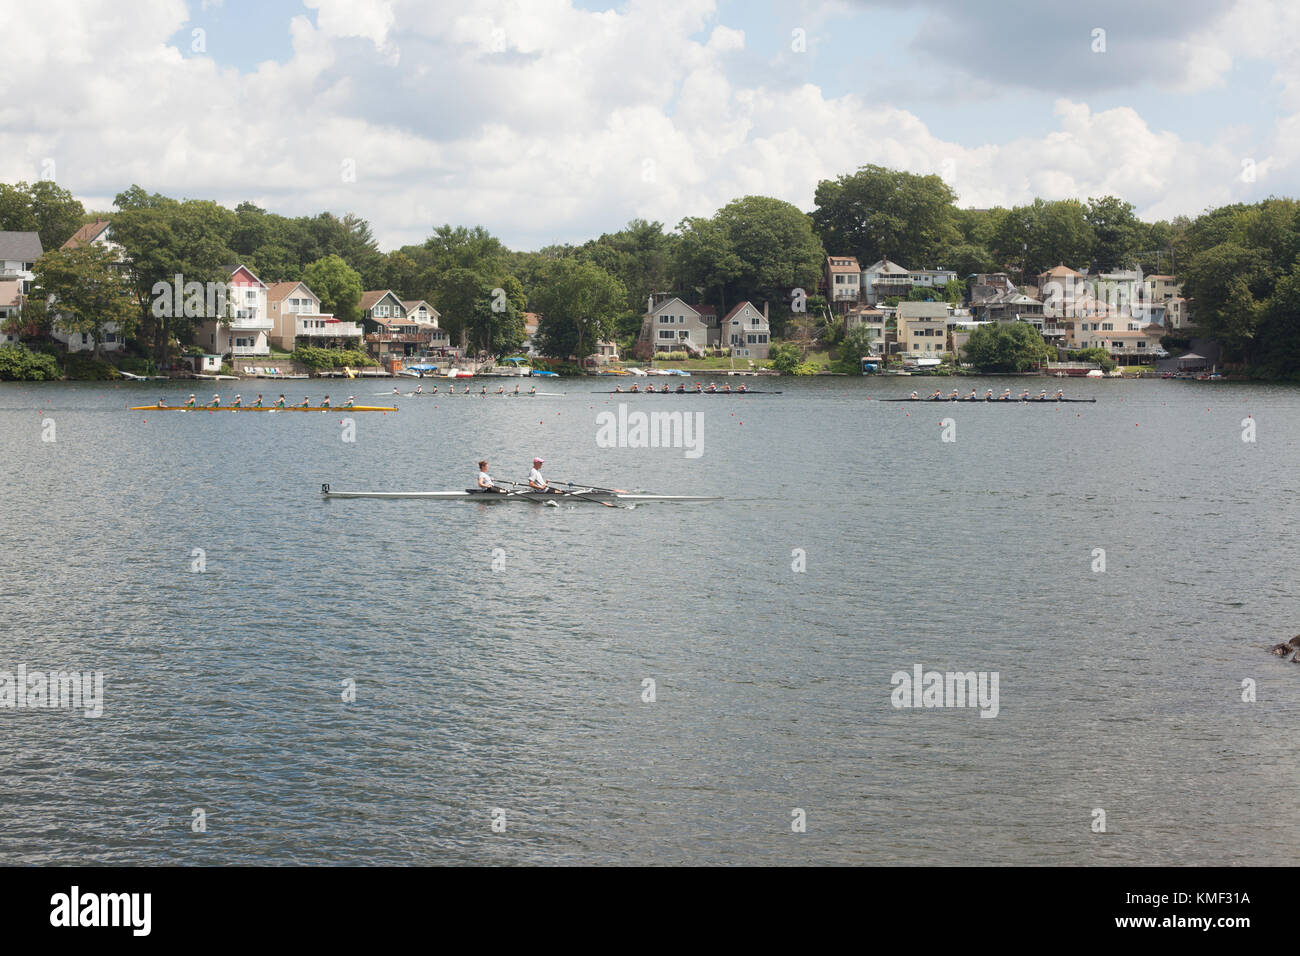 Crew boats racing in regatta on river with houses and trees on riverbank,Worcester,Massachusetts,USA - Stock Image